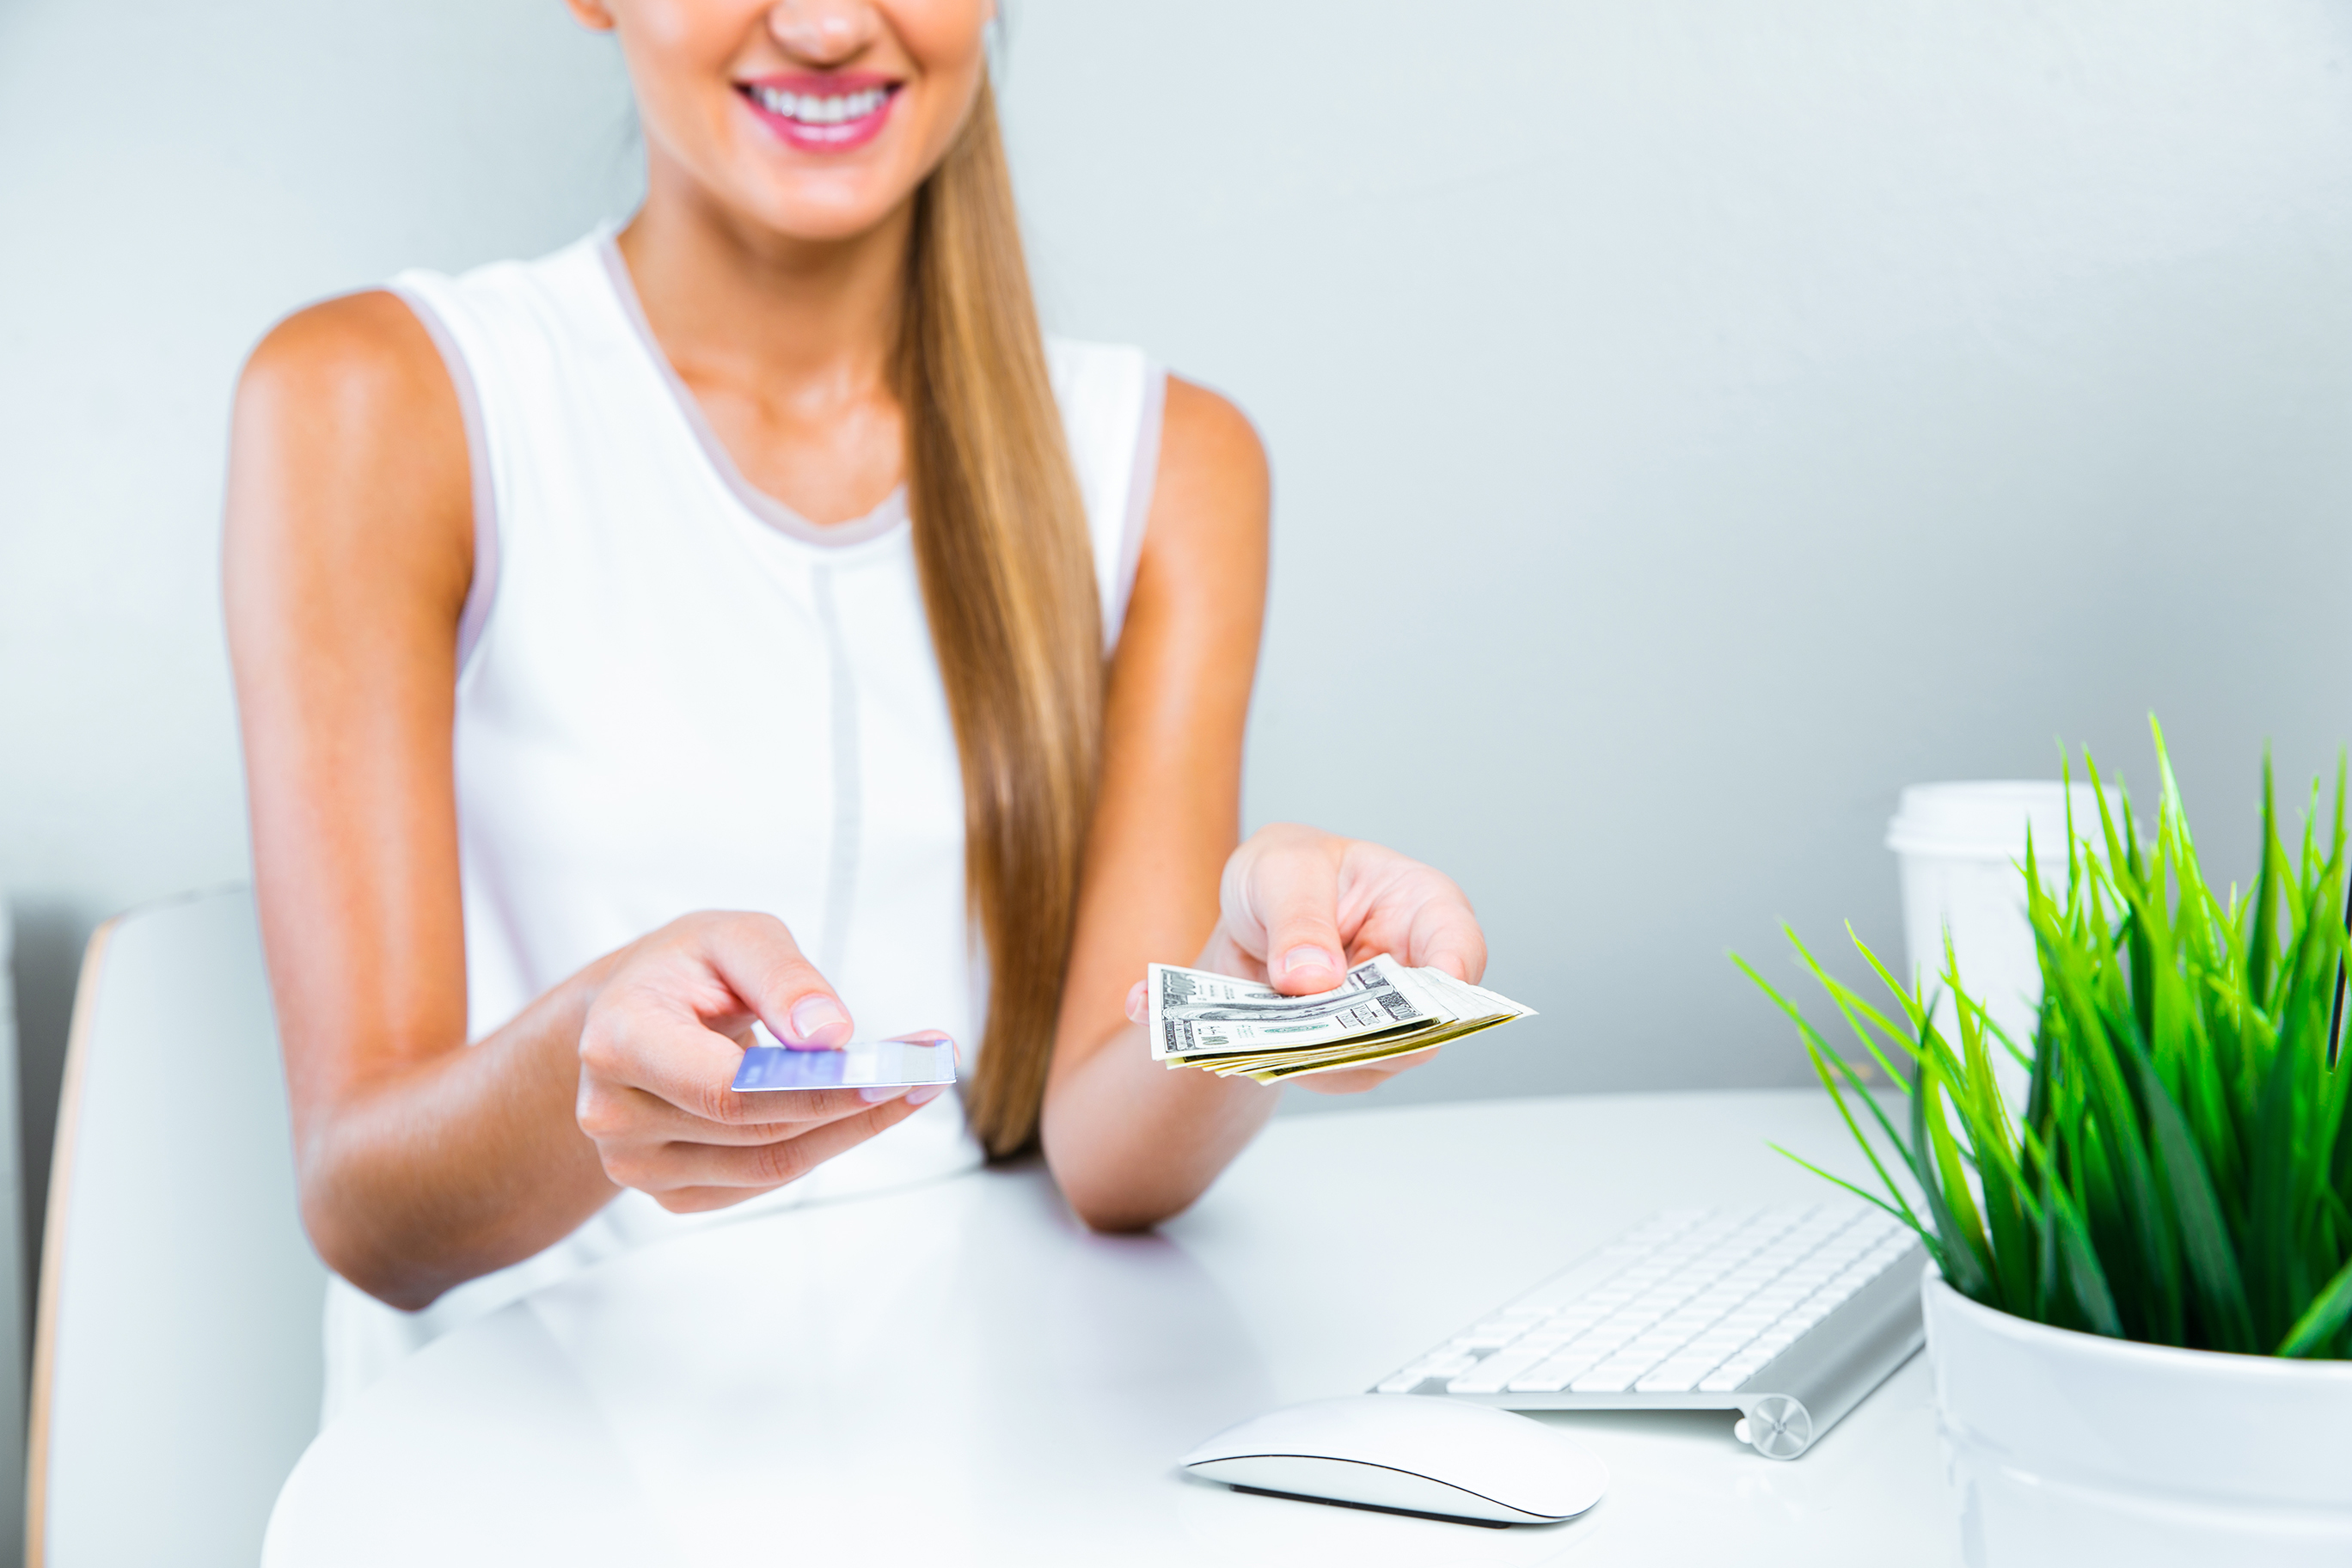 woman holding cash and card